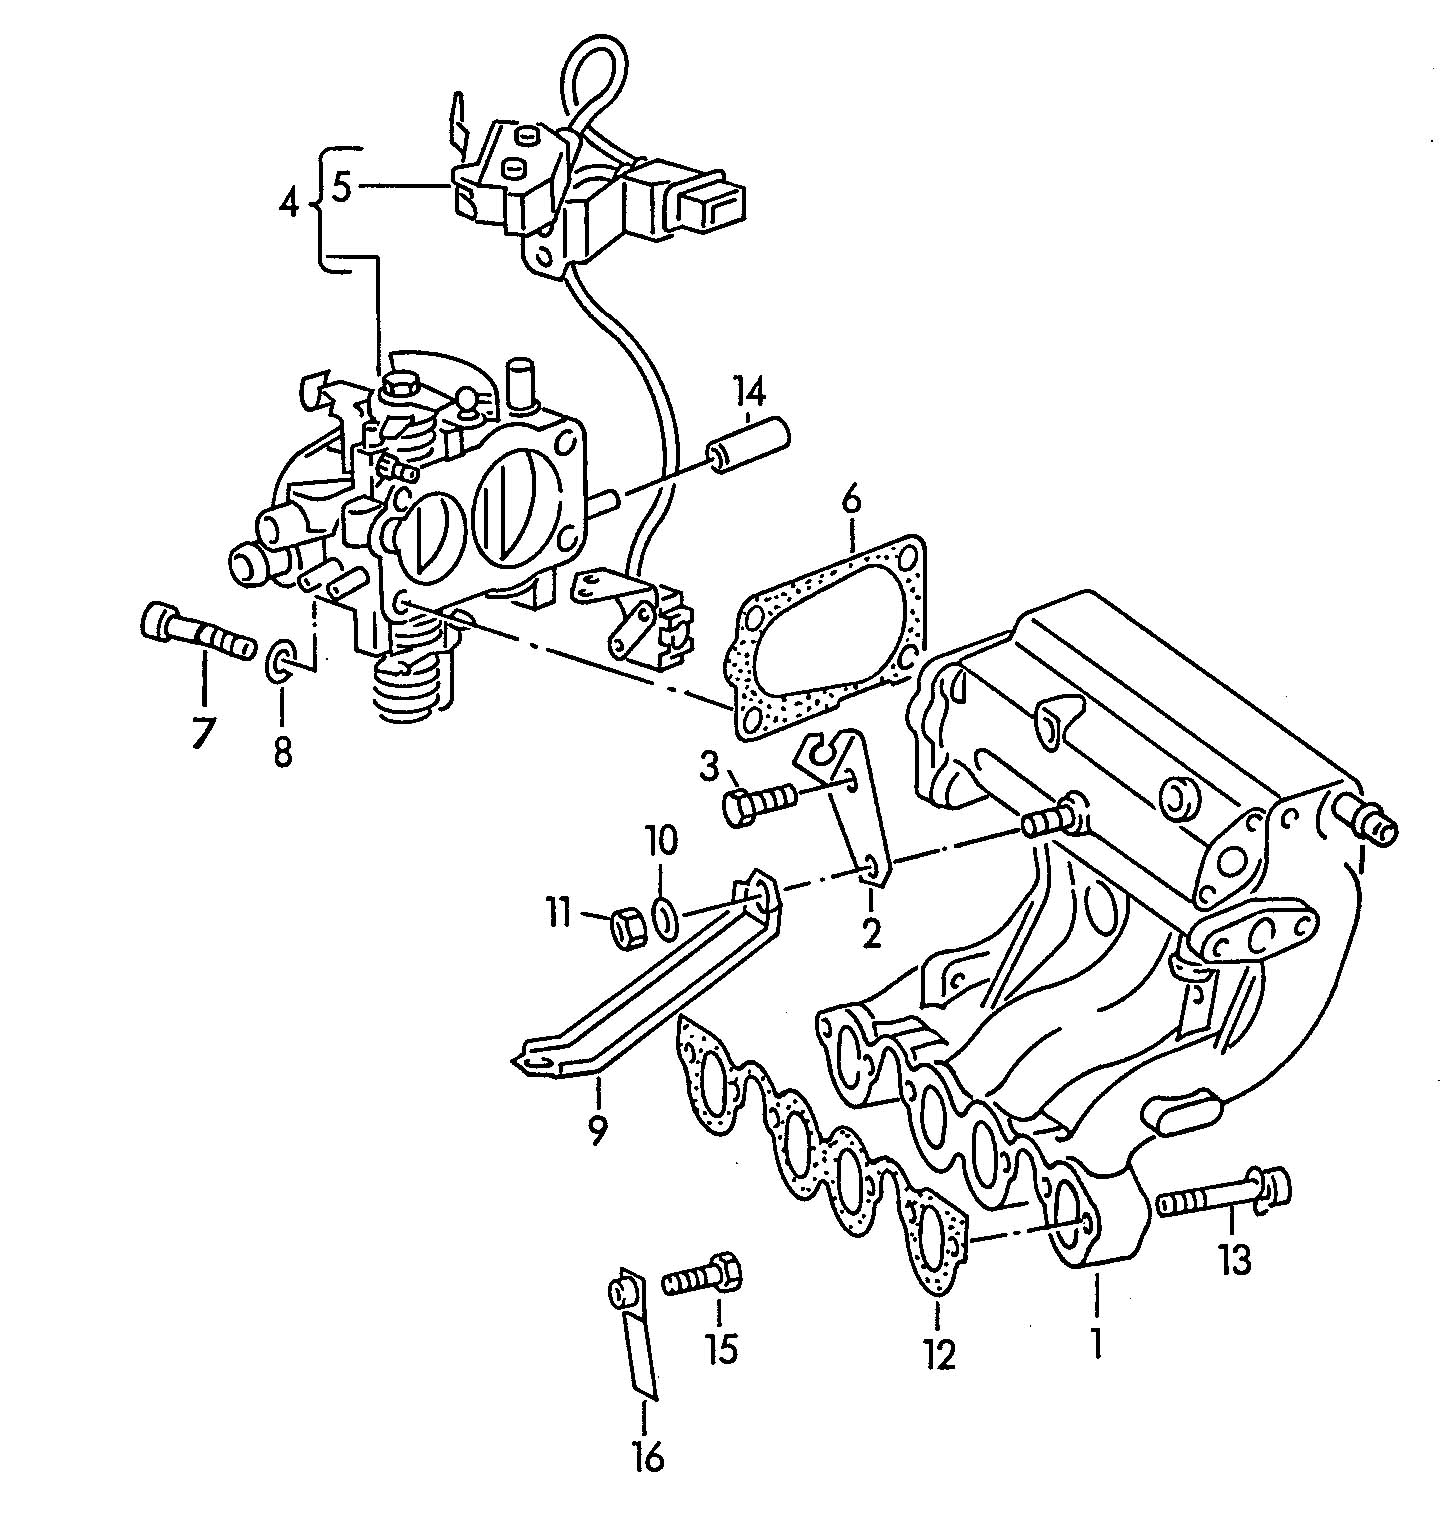 Volkswagen Oem Part Number 56884 further ShowAssembly also Steering Gear And Linkage Scat besides ShowAssembly as well ShowAssembly. on 1990 volkswagen rabbit